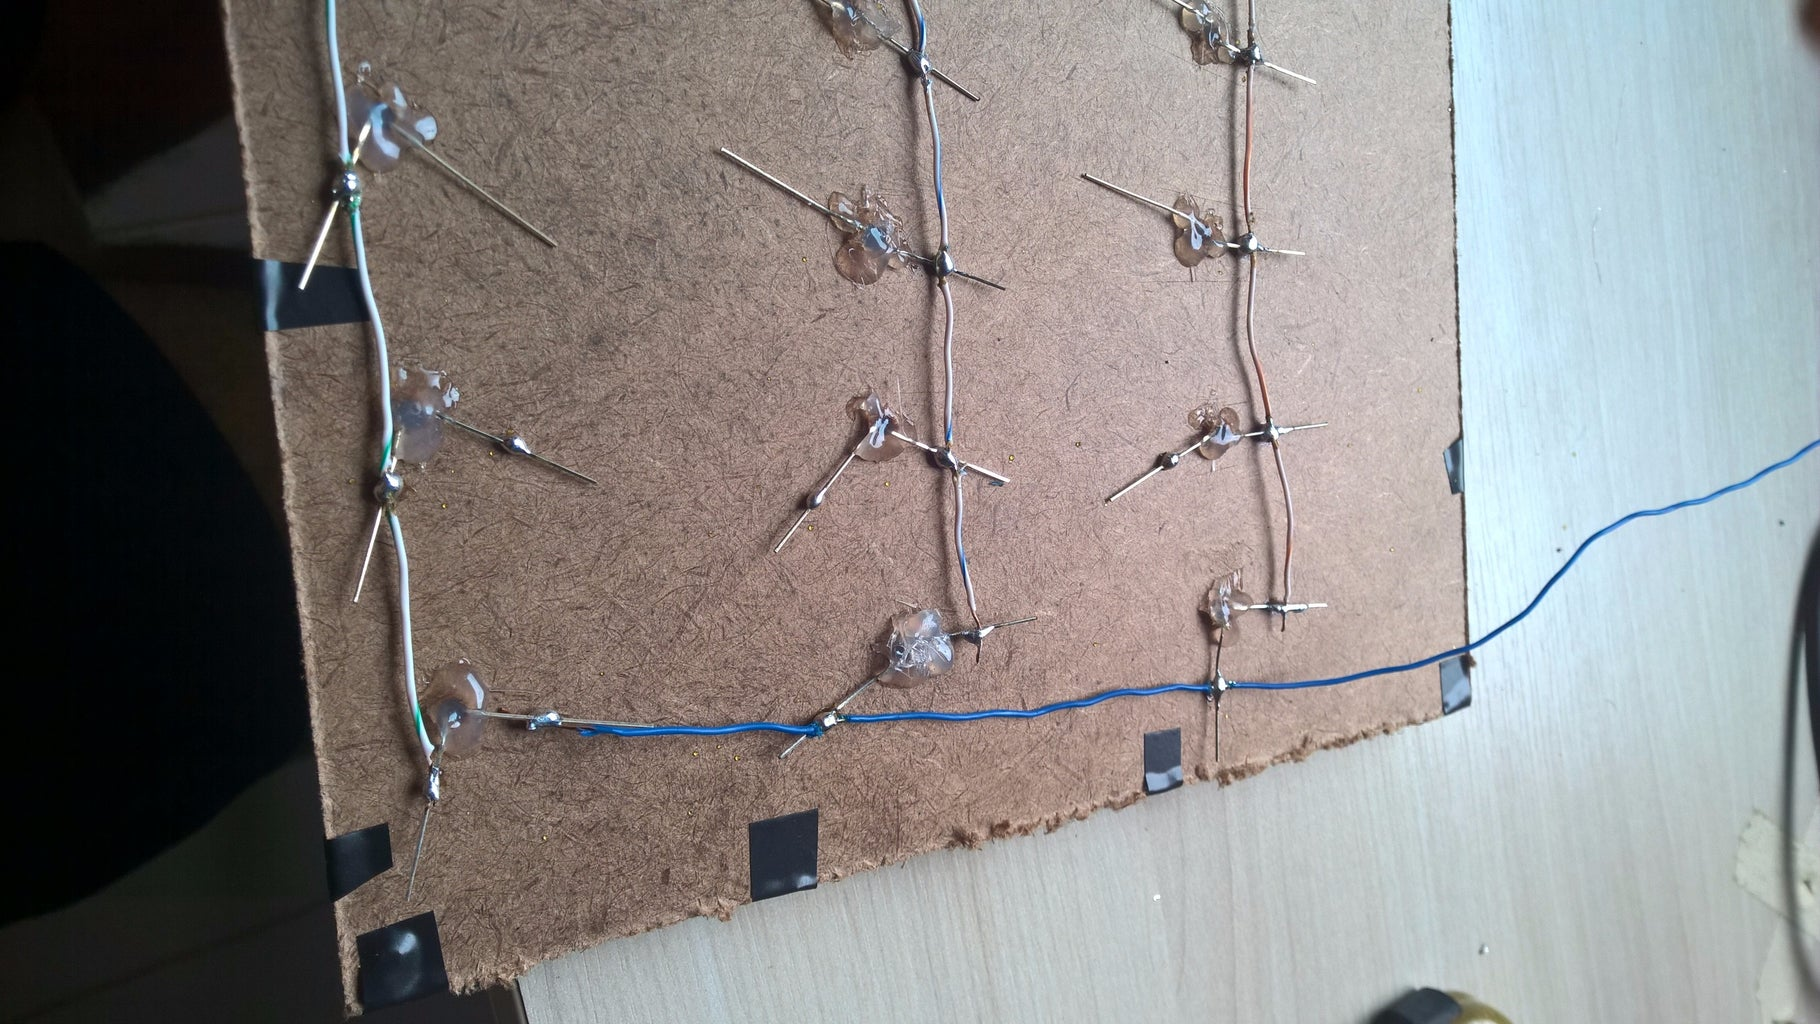 Connecting the LEDs